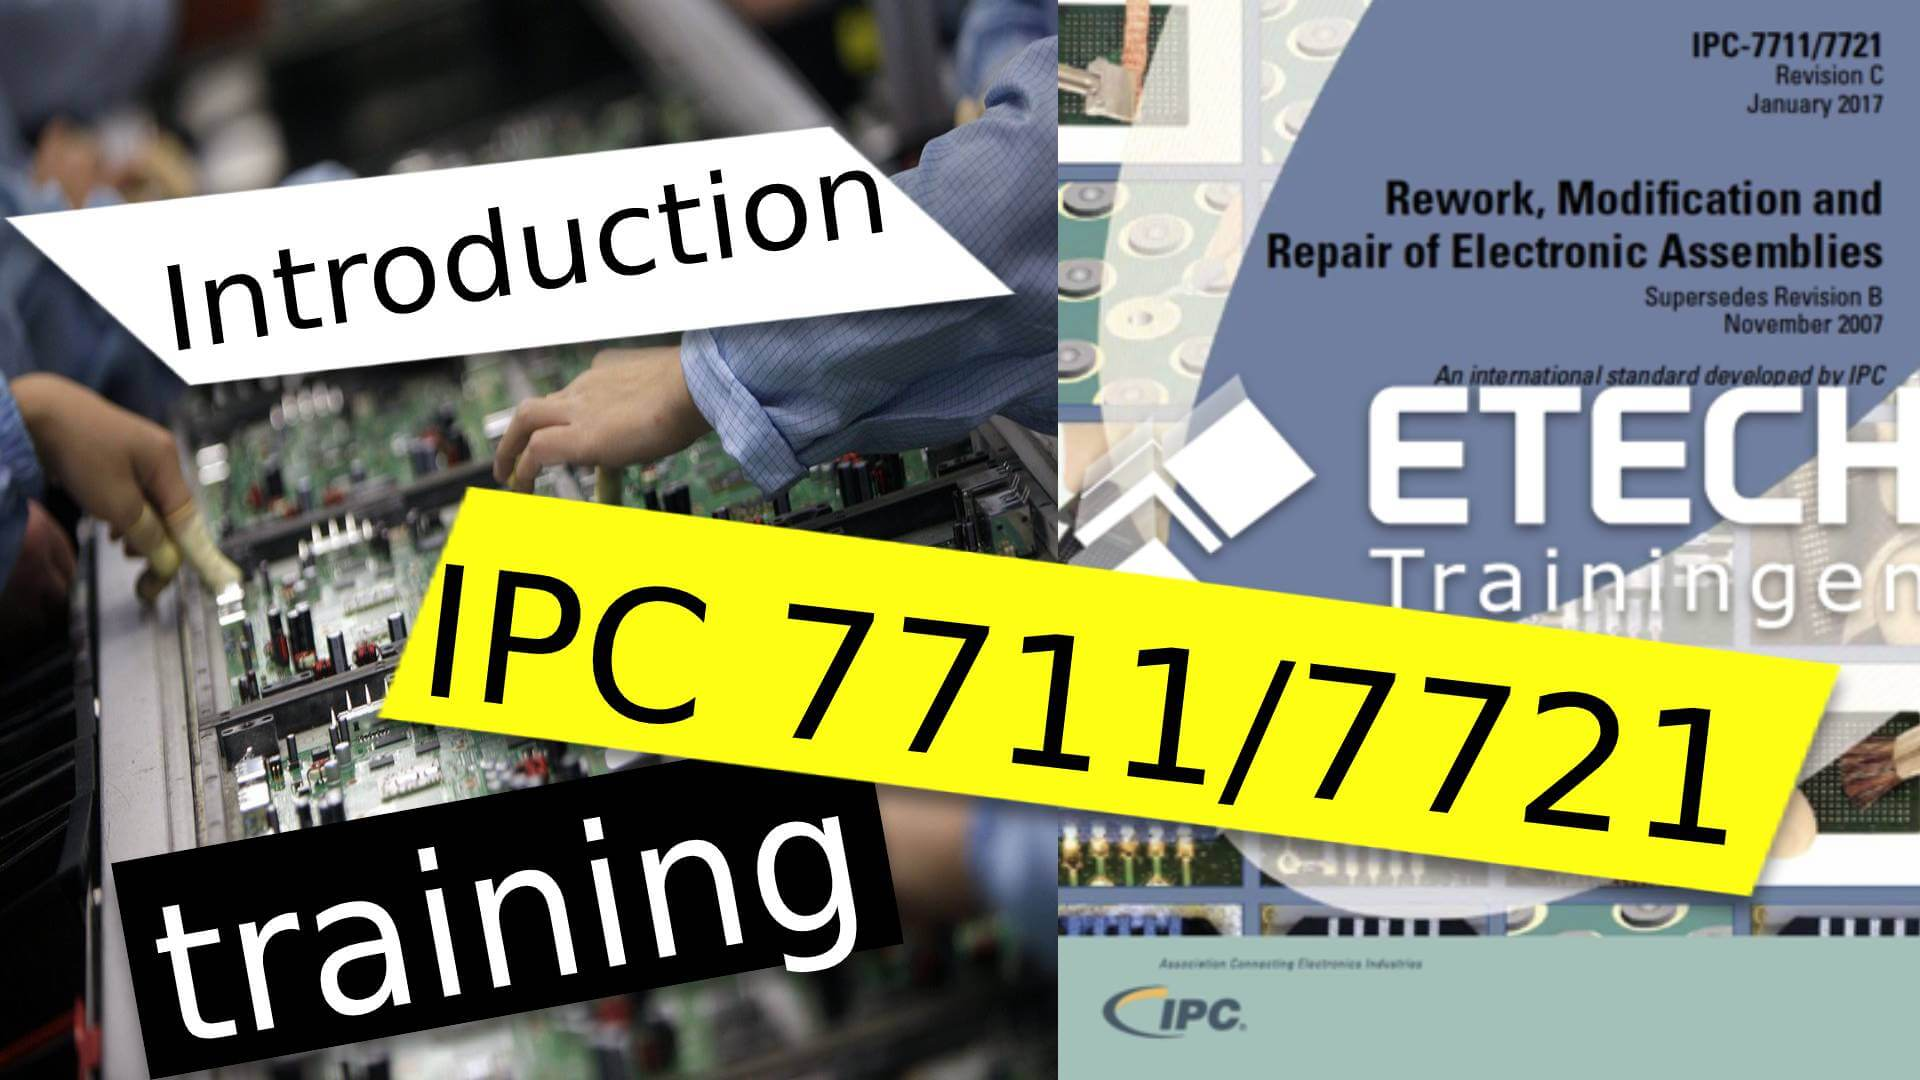 RECERTIFICATION IPC 7711/7721 CERTIFIED IPC TRAINER (CIT)